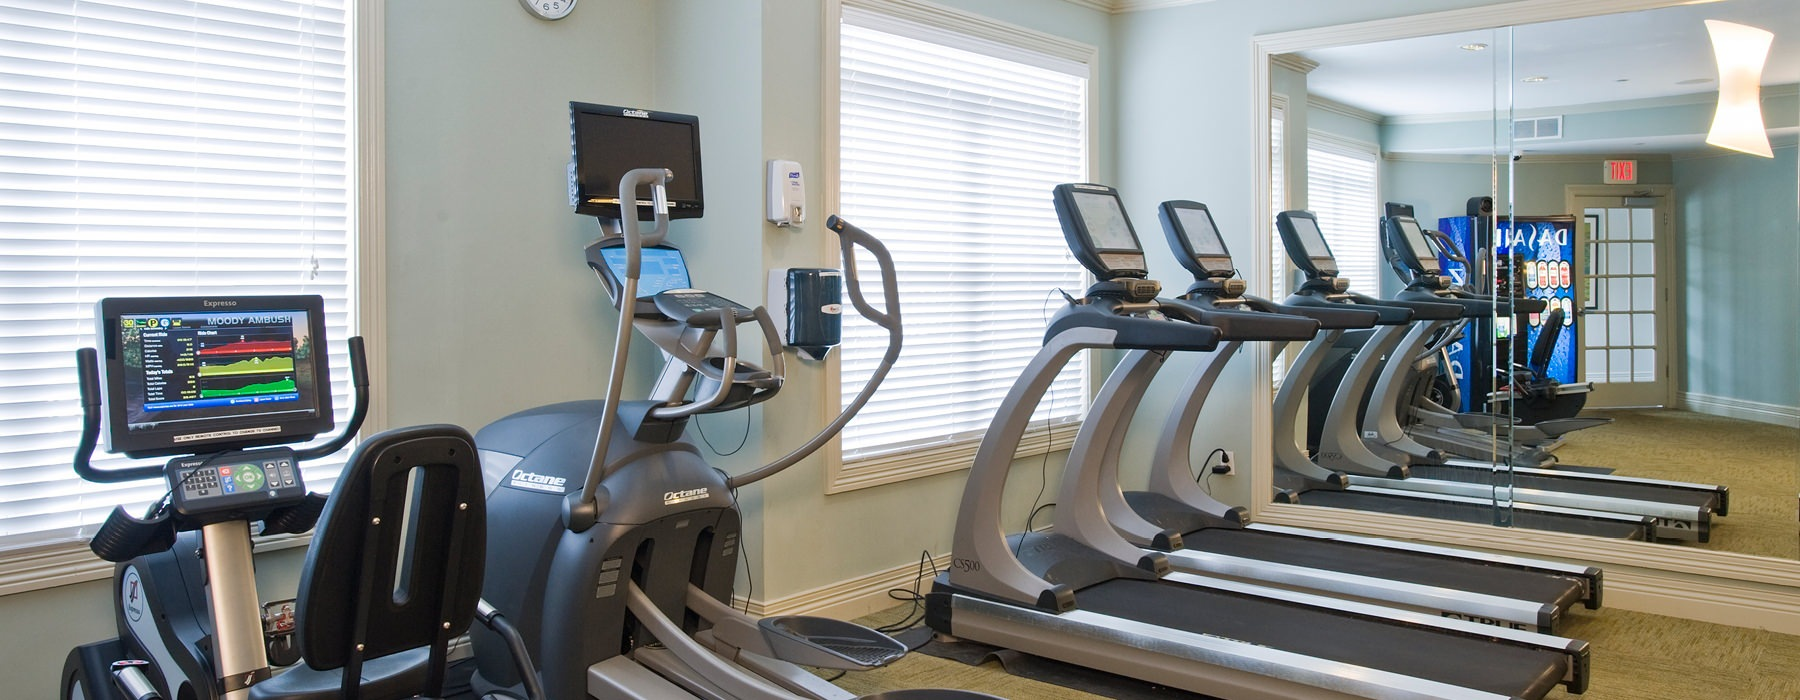 Fitness center with free weights, treadmills and ellipticals.